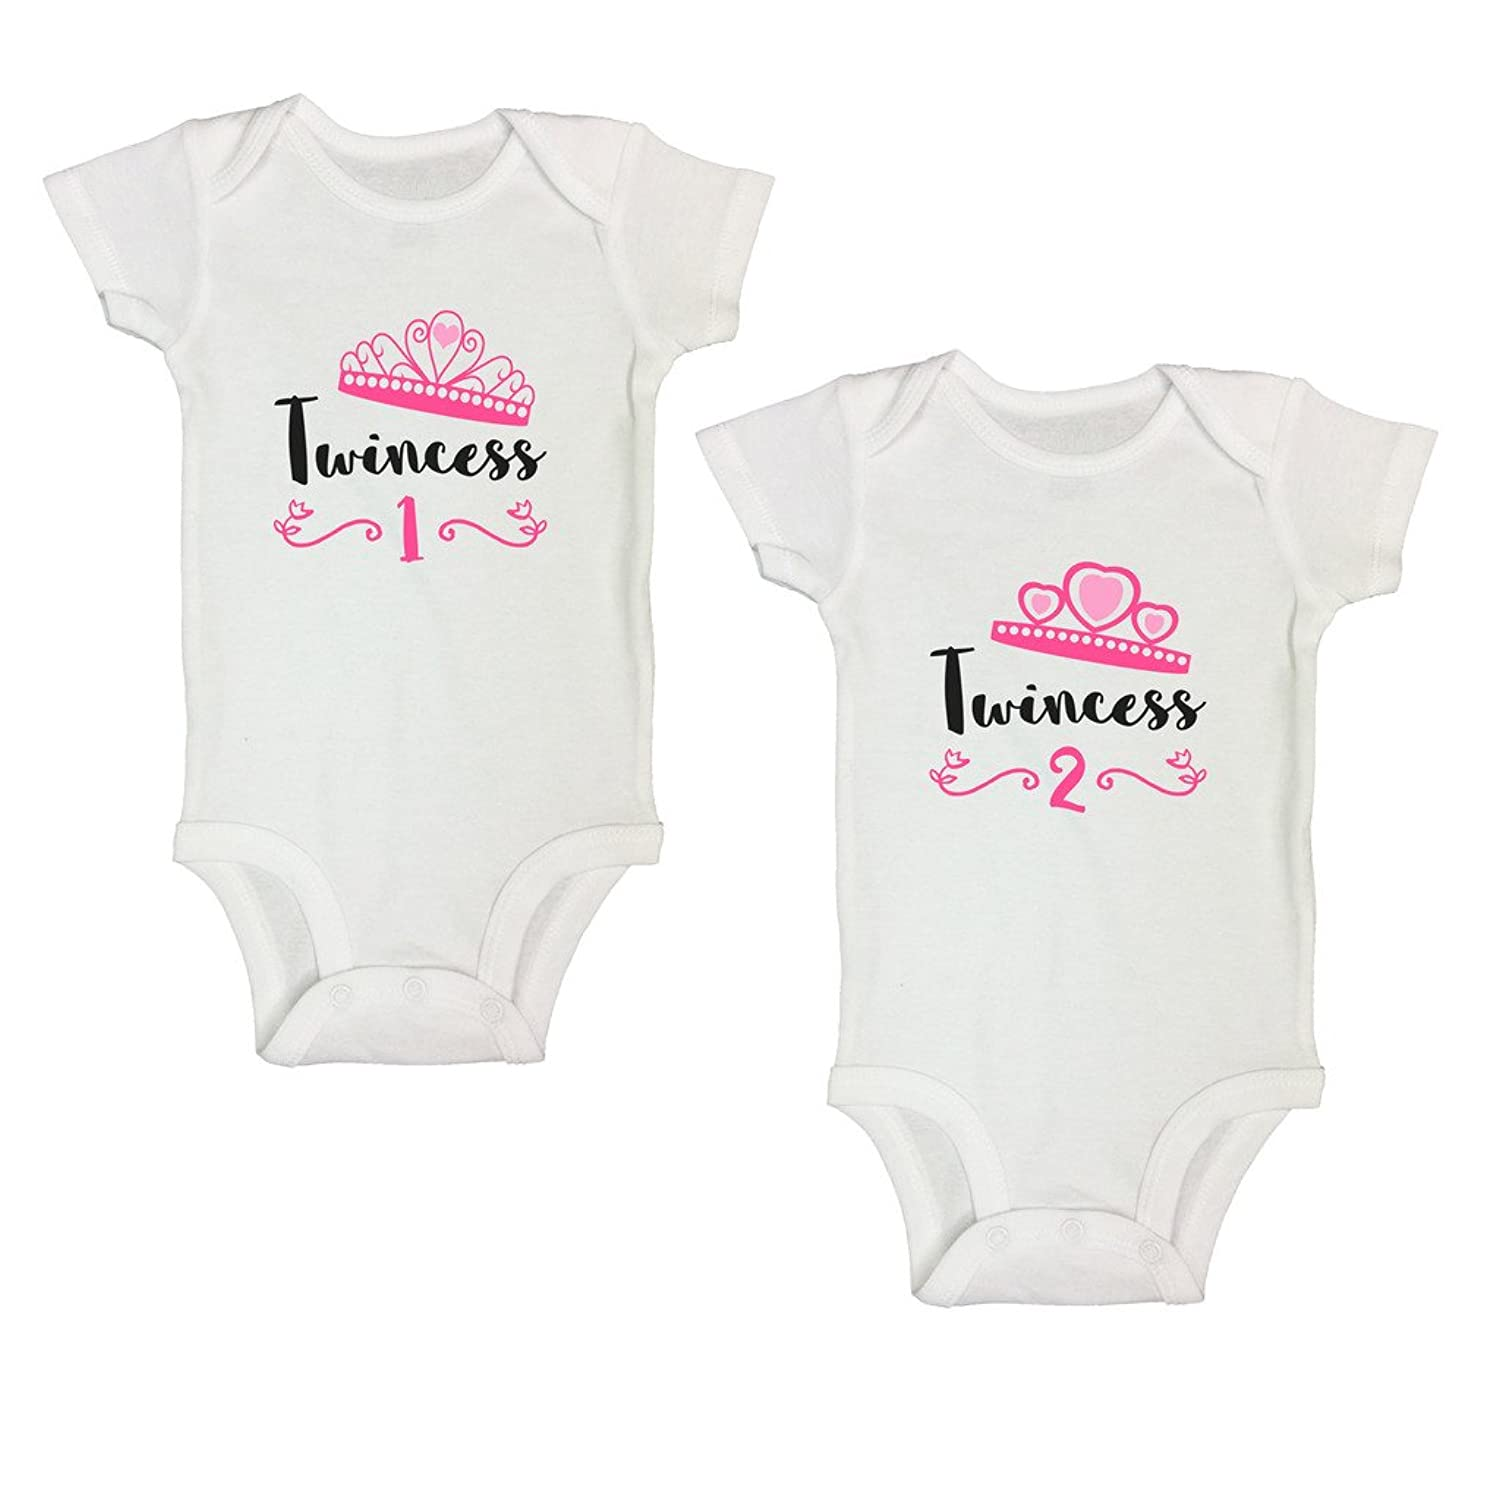 e4495af7e Adorable Twin Sets - 2 Pieces Super cute! Ships within 24 hours - To You in  2-5 Days. Designed and Sold Exclusively by Funny Threadz® Trademark Brand